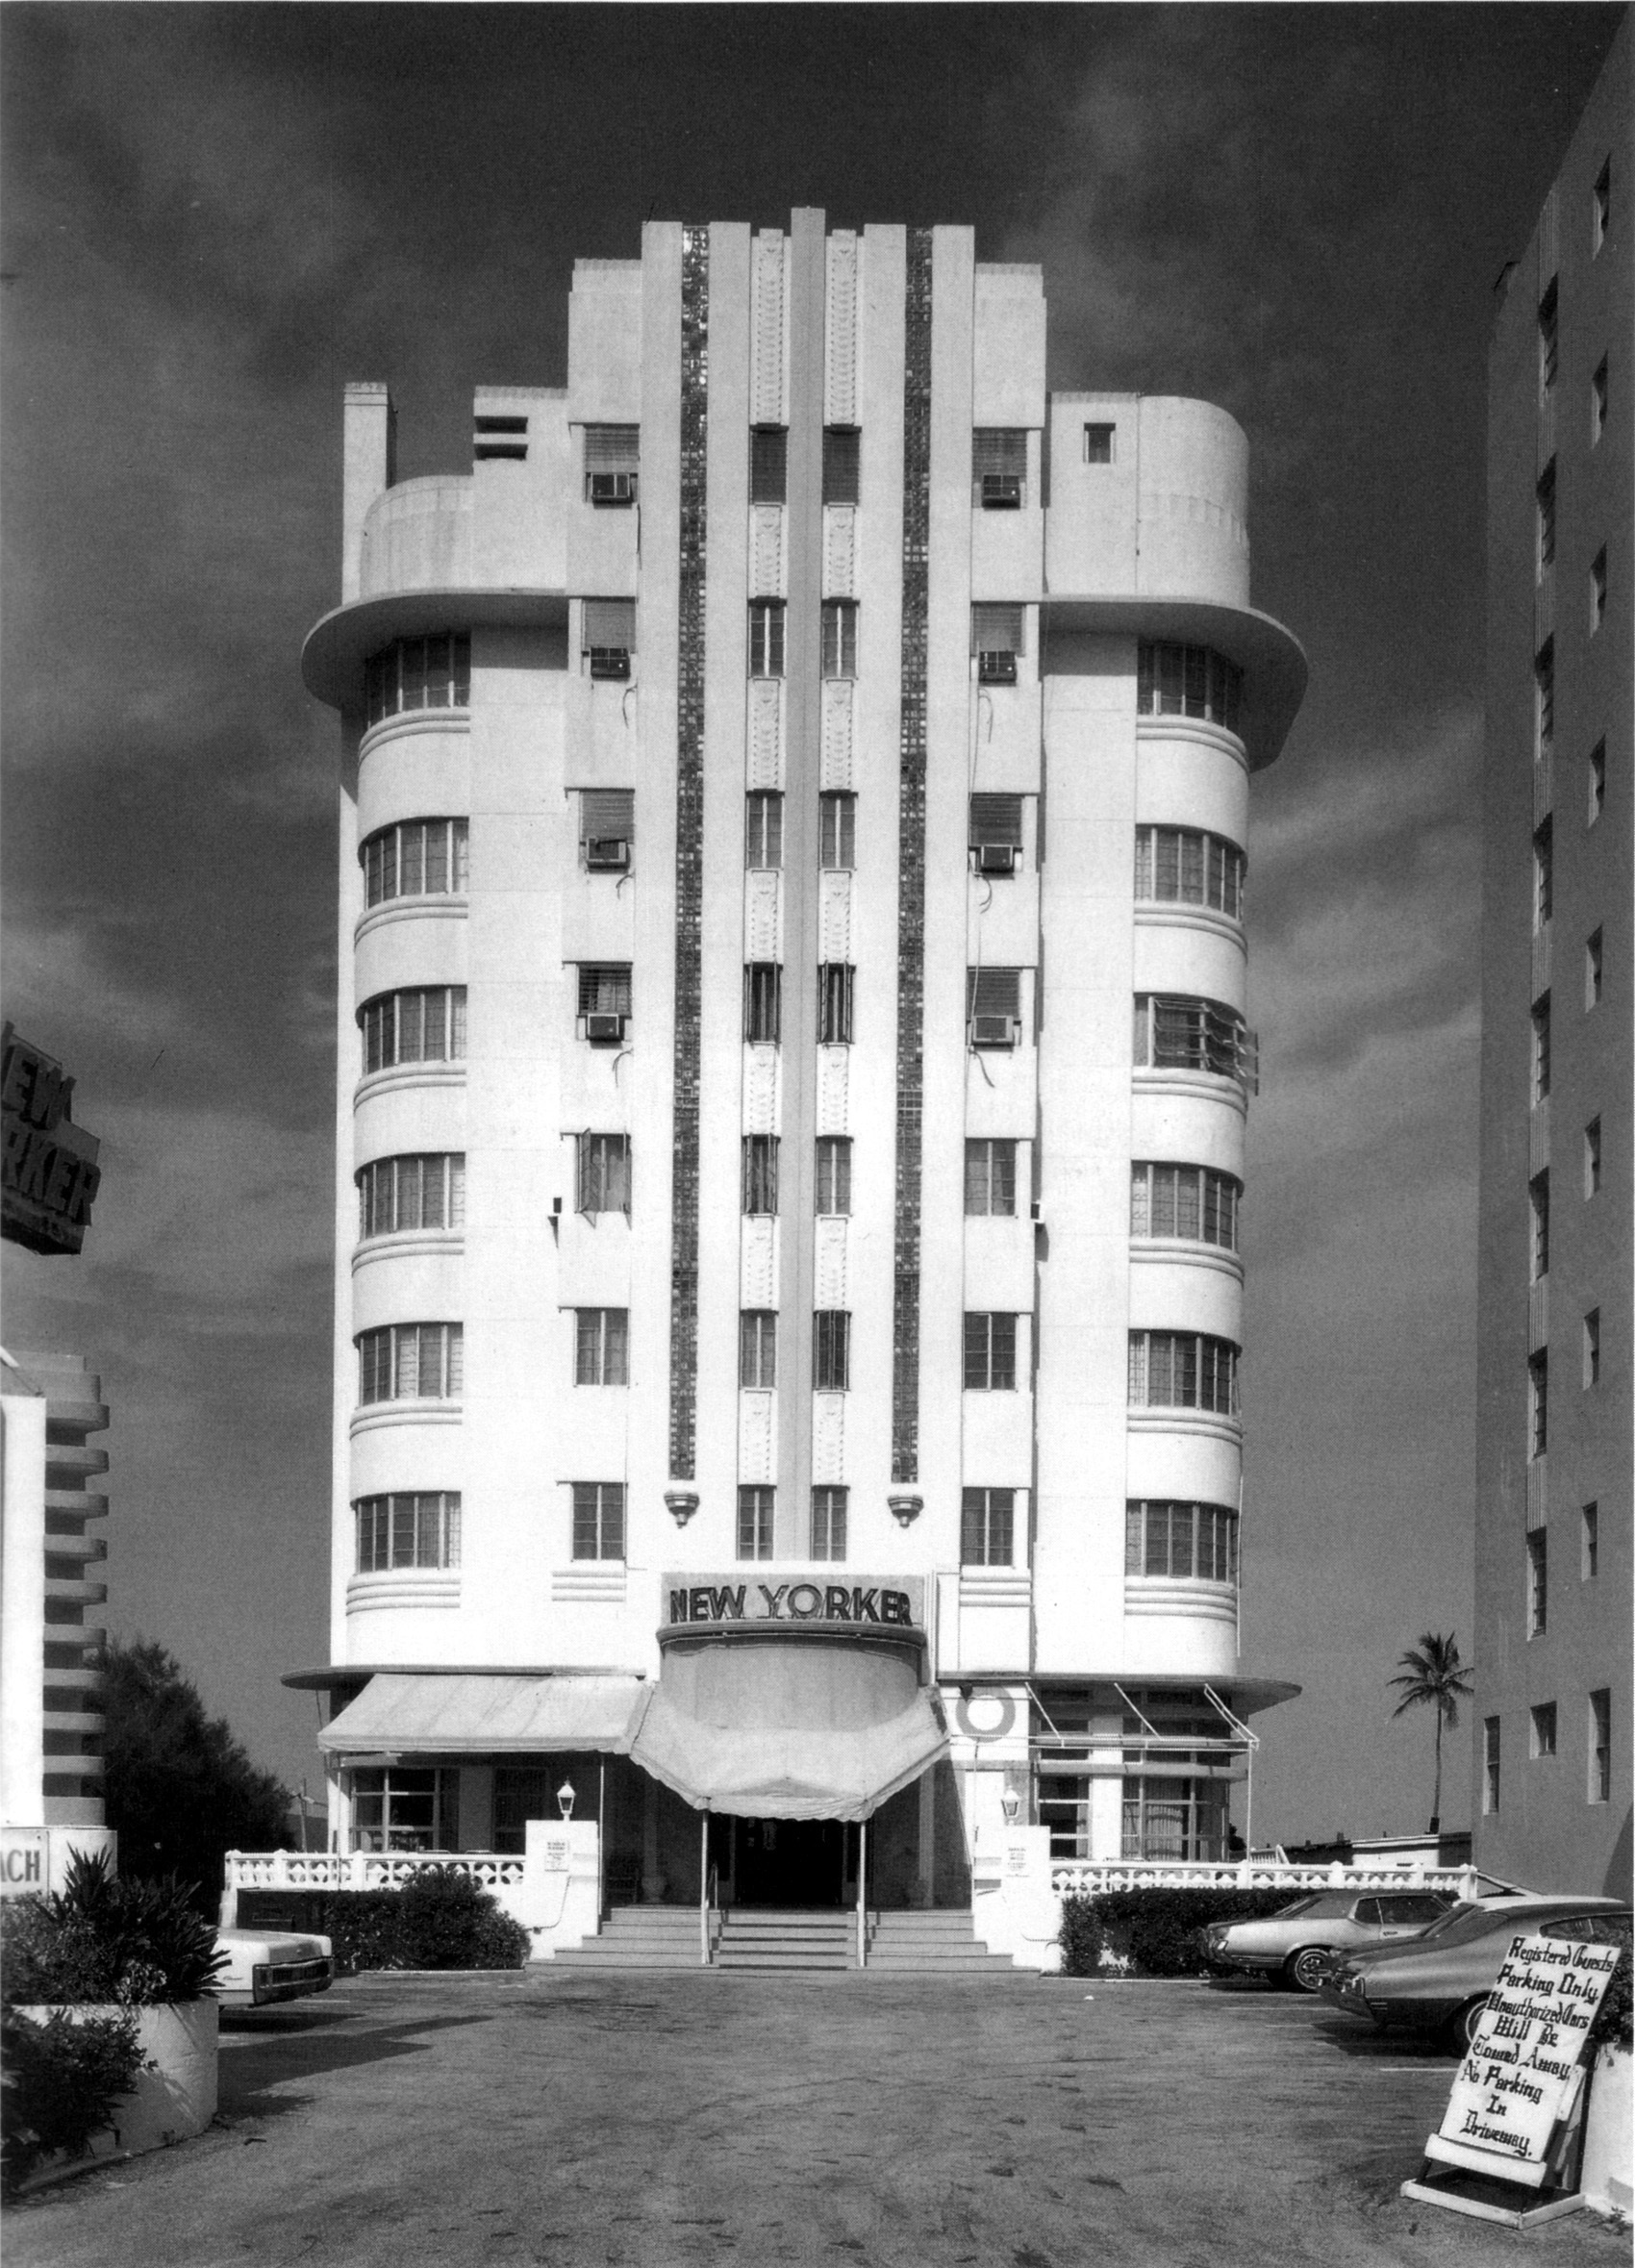 art deco hotel new yorker miami beach 1939 1981 lost architecture